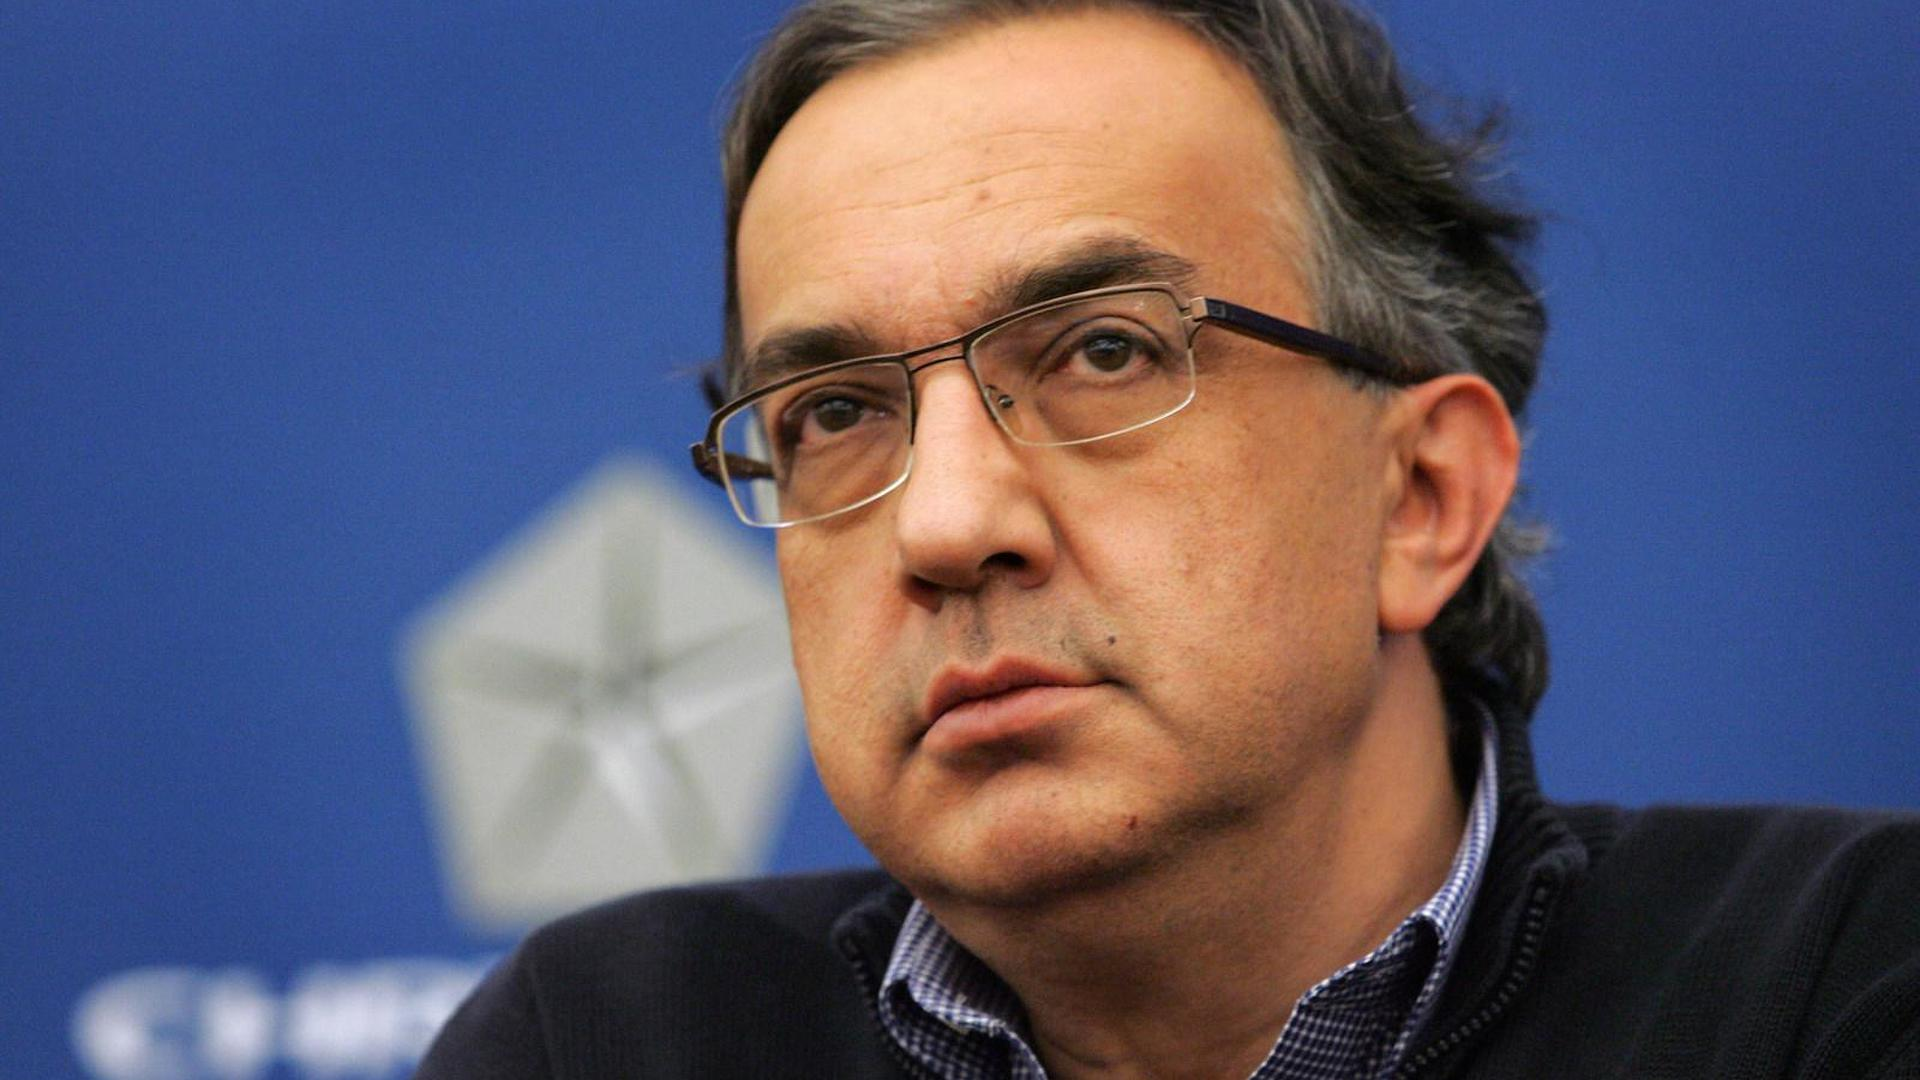 Sergio Marchionne reportedly eyeing a mega merger or deal before retirement